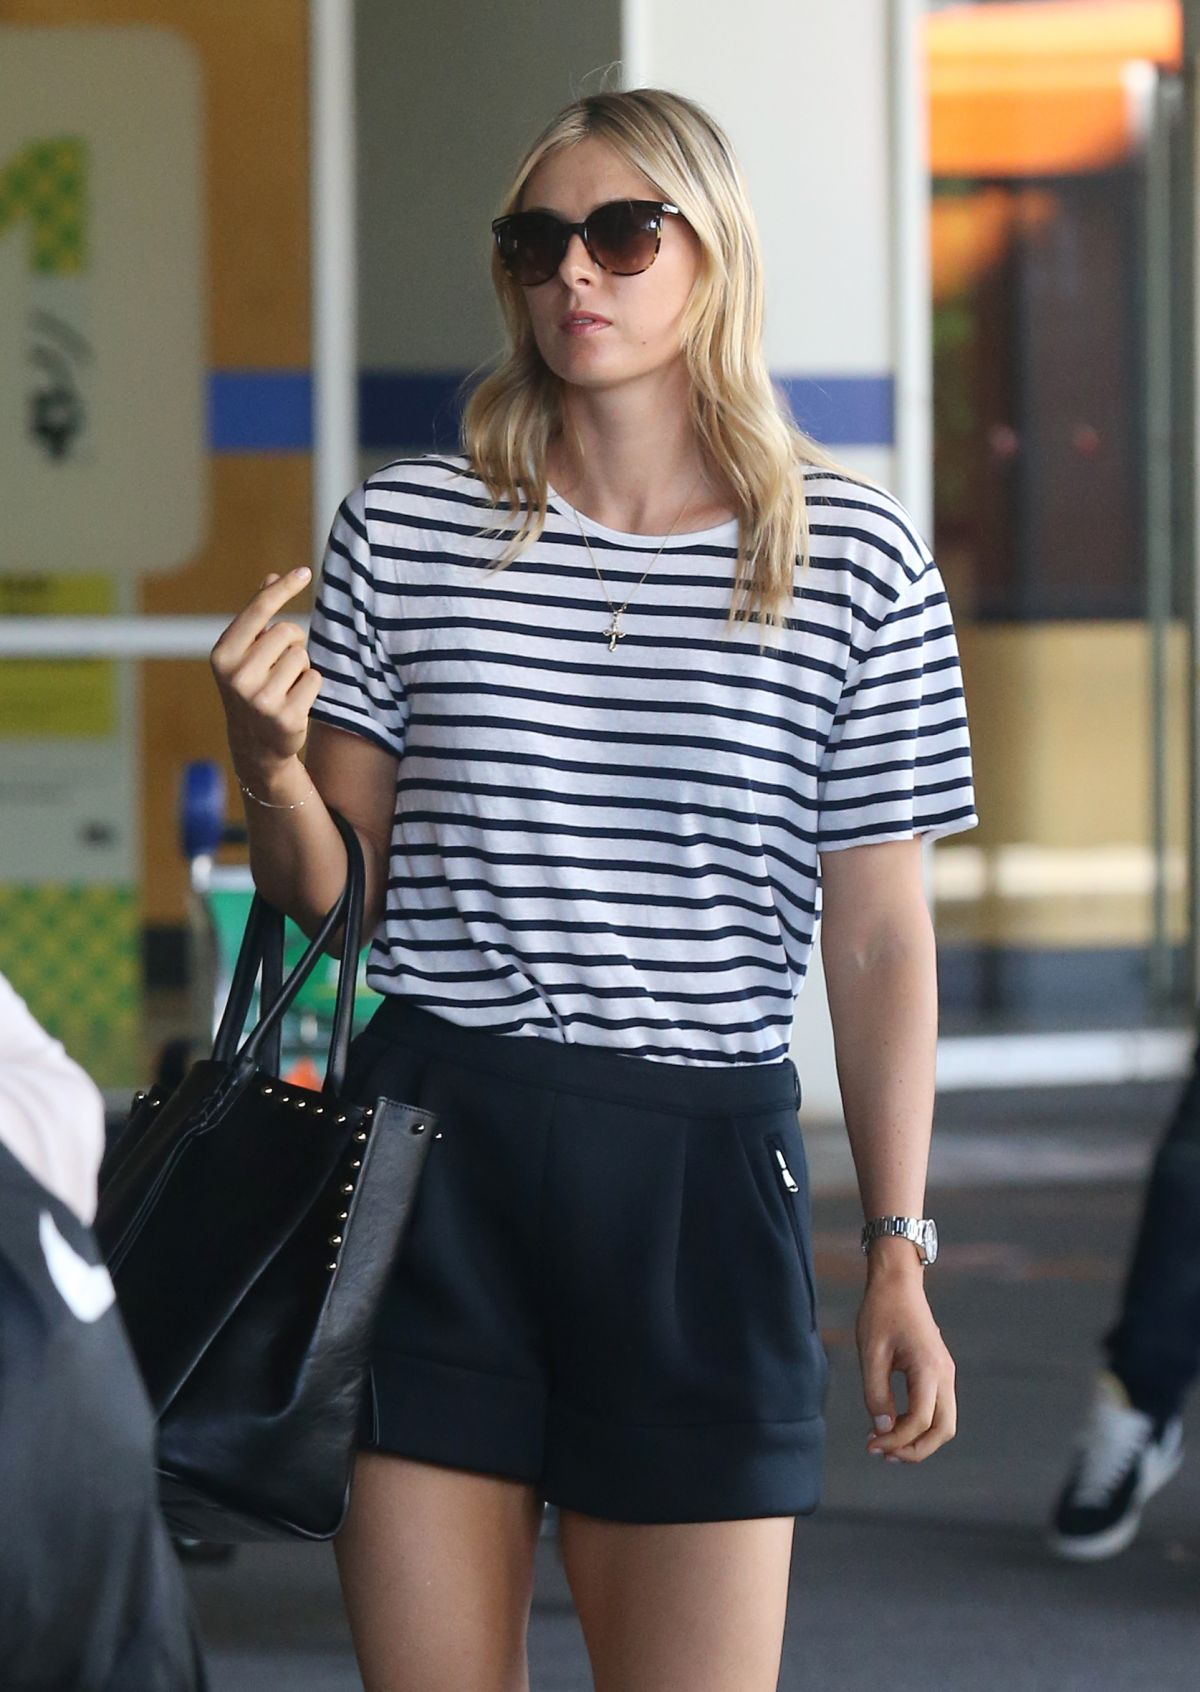 MARIA SHARAPOVA Arrives at Airport in Melbourne